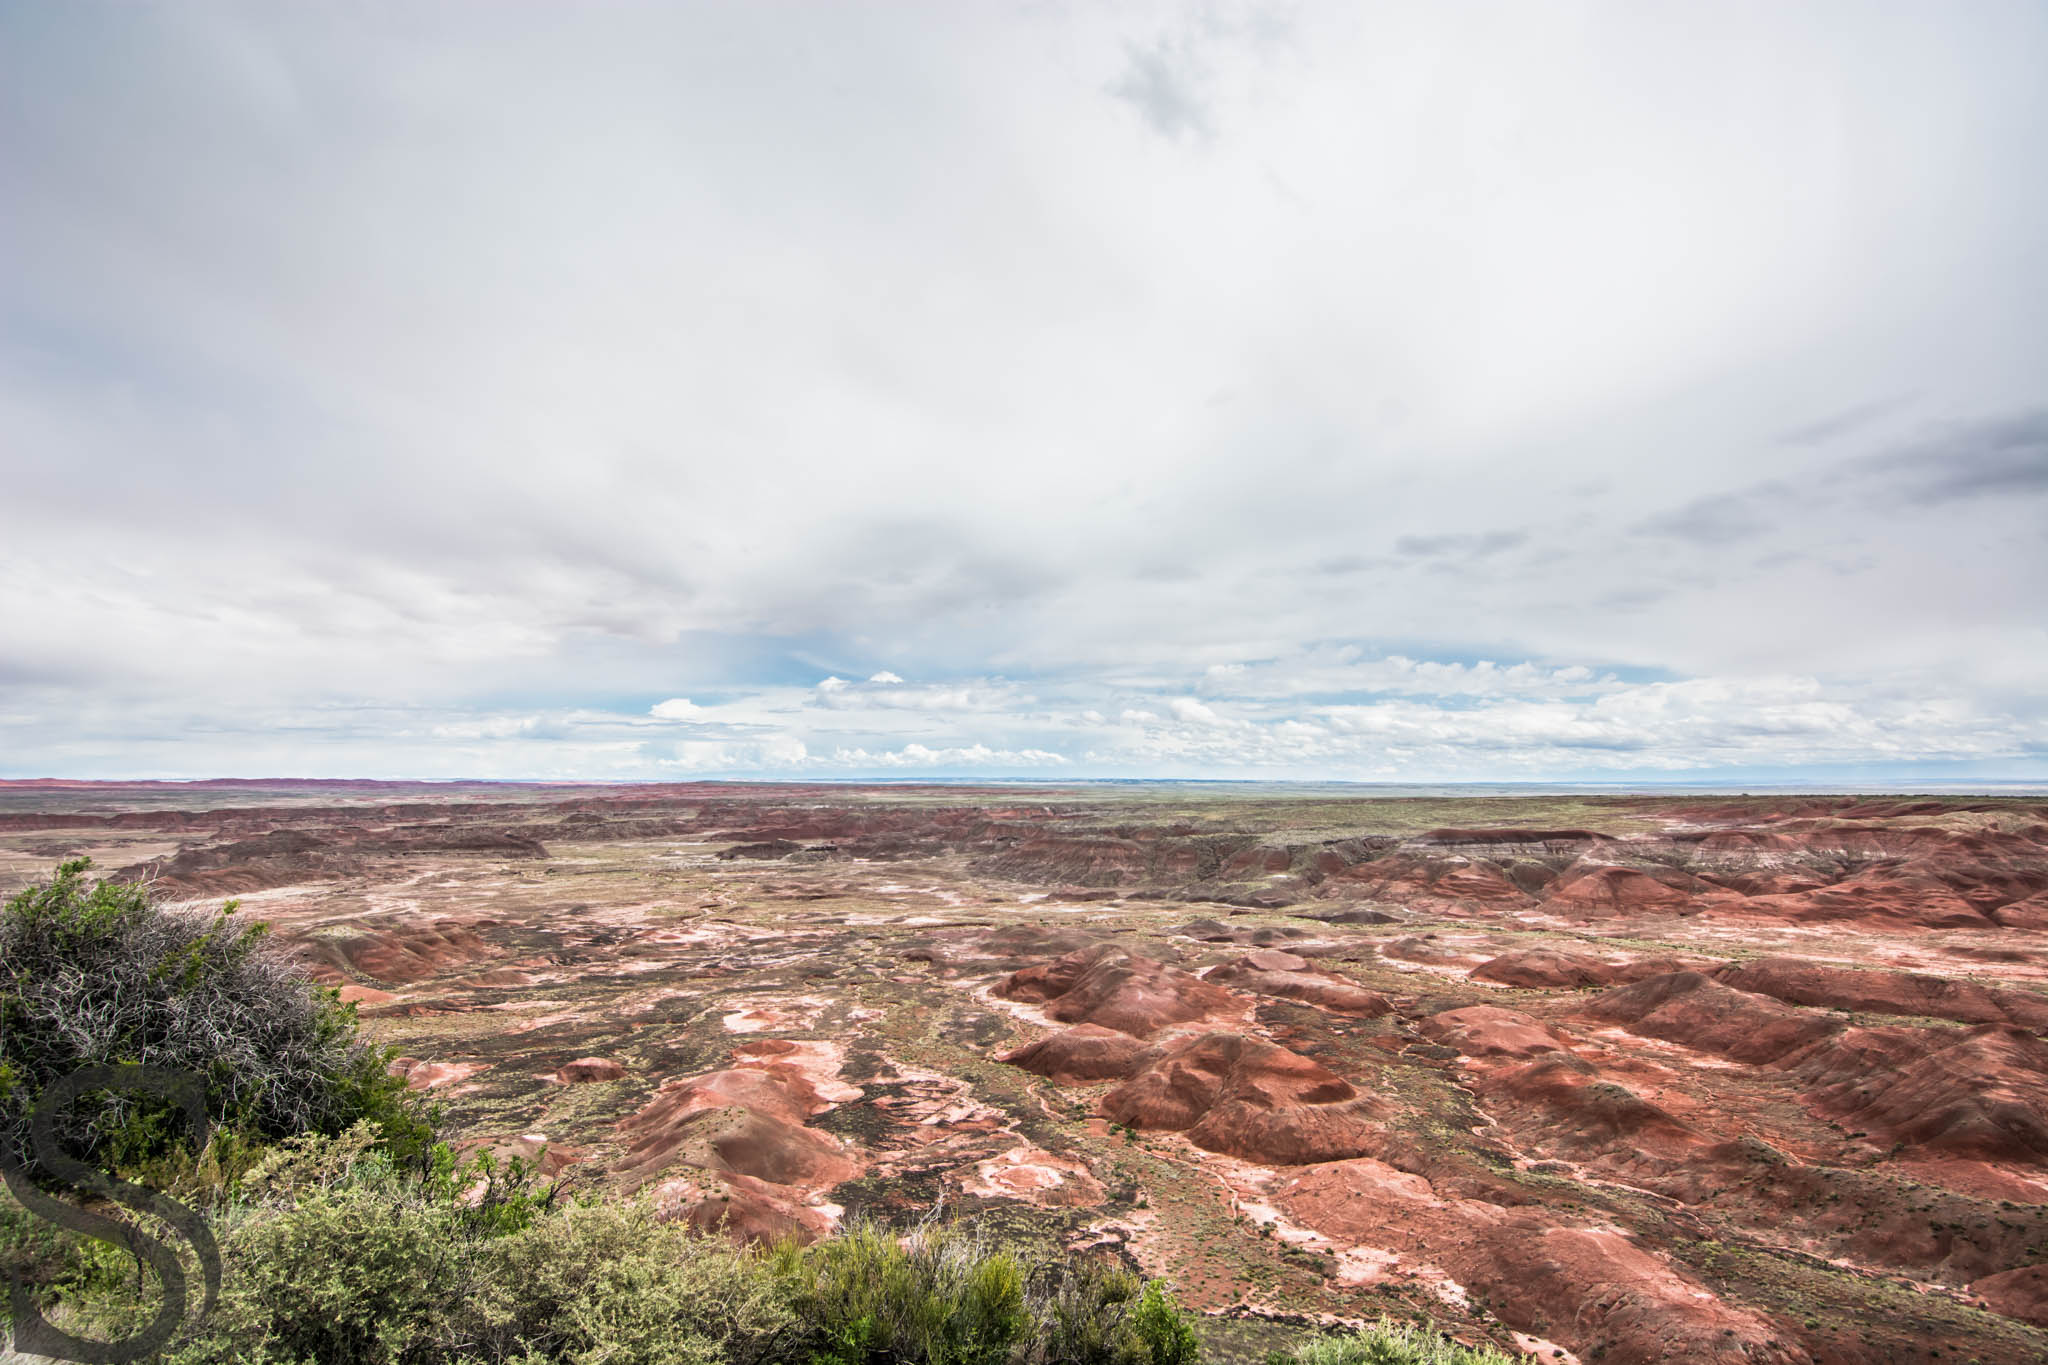 View from Tawa Point Overlook in Petrified Forest National Park